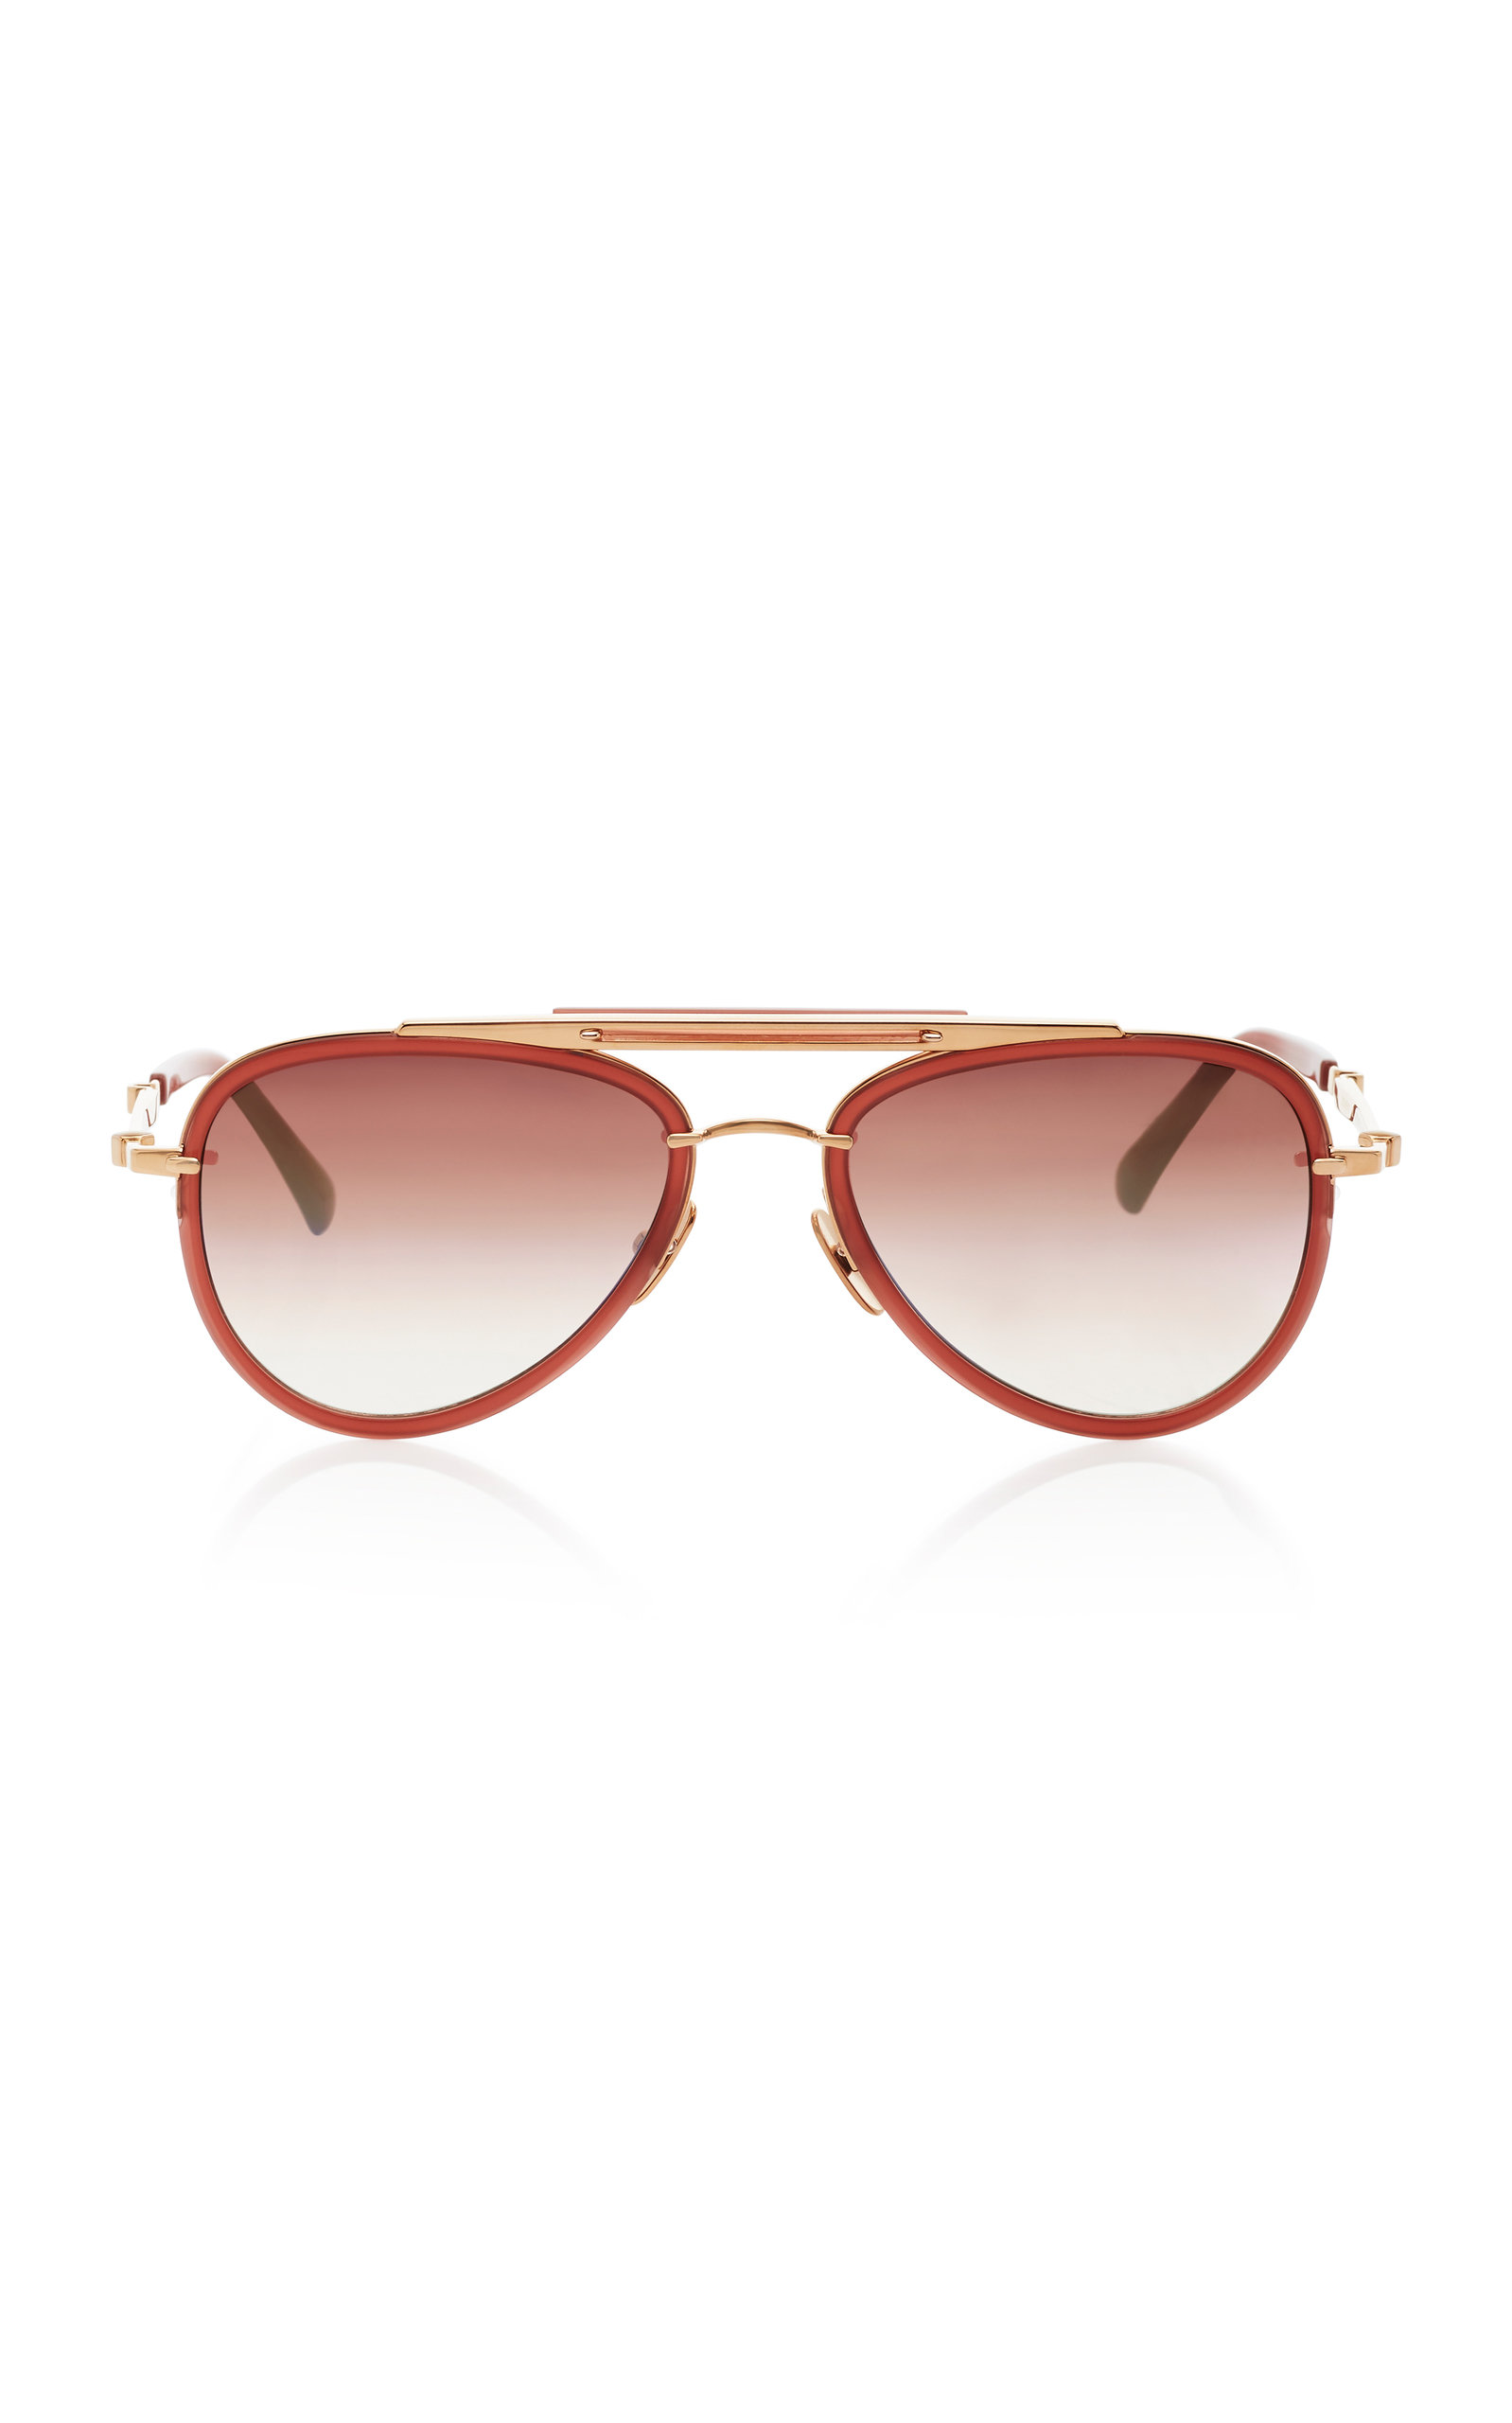 MR. LEIGHT Doheny Sl54 Aviator-Style Acetate And Metal Sunglasses in Brown